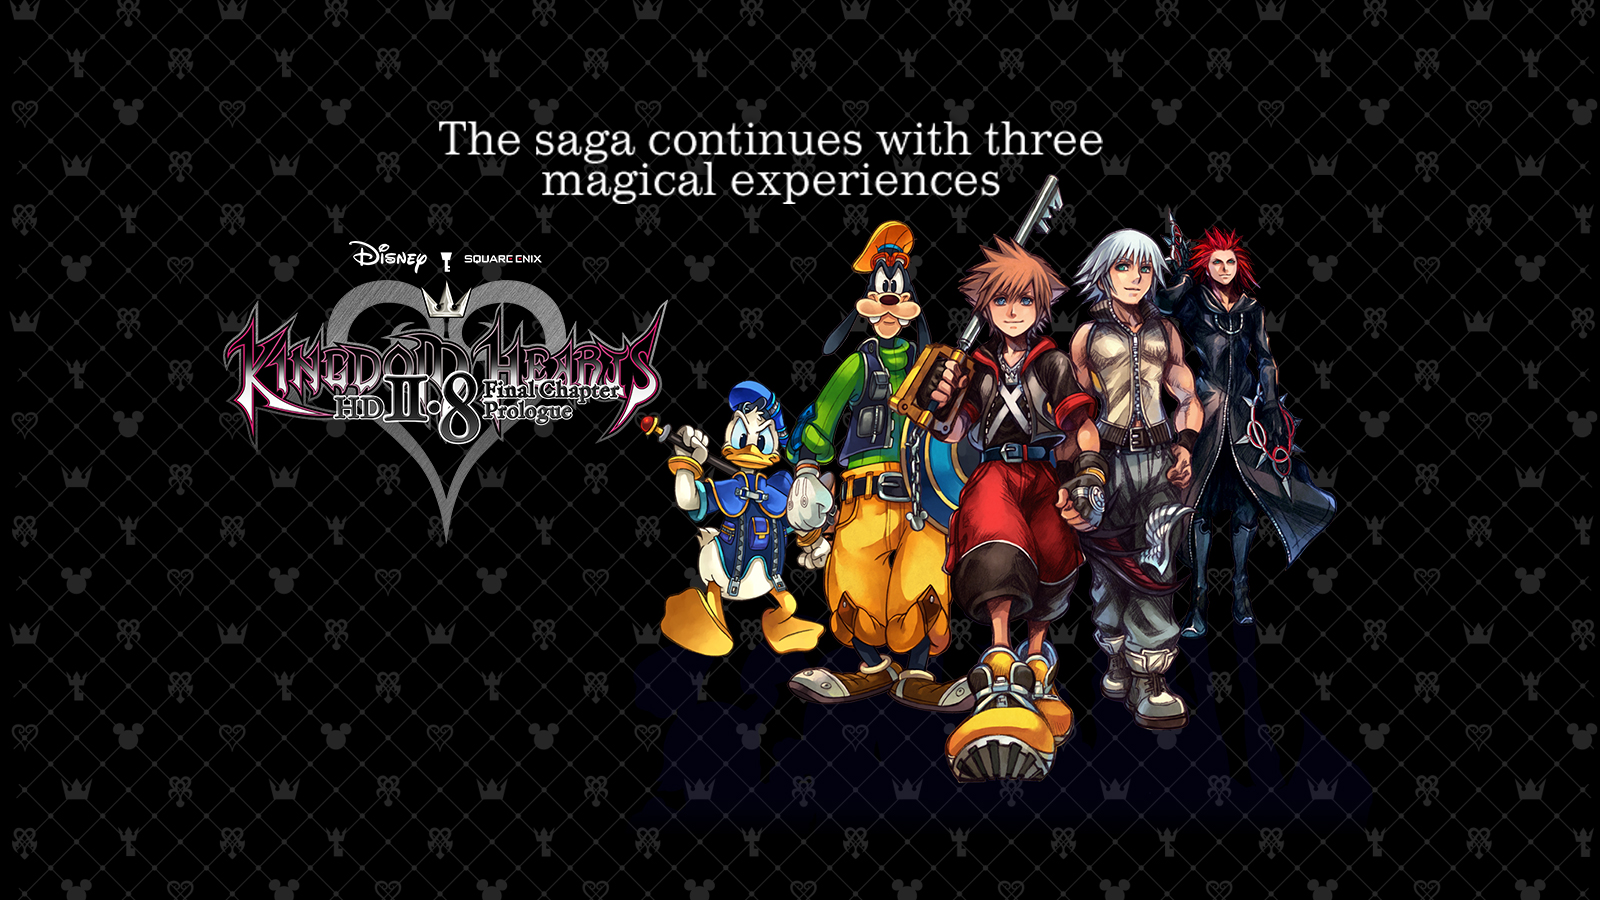 Kingdom Hearts Hd 2 8 Final Chapter Prologue Game Ps4 Playstation